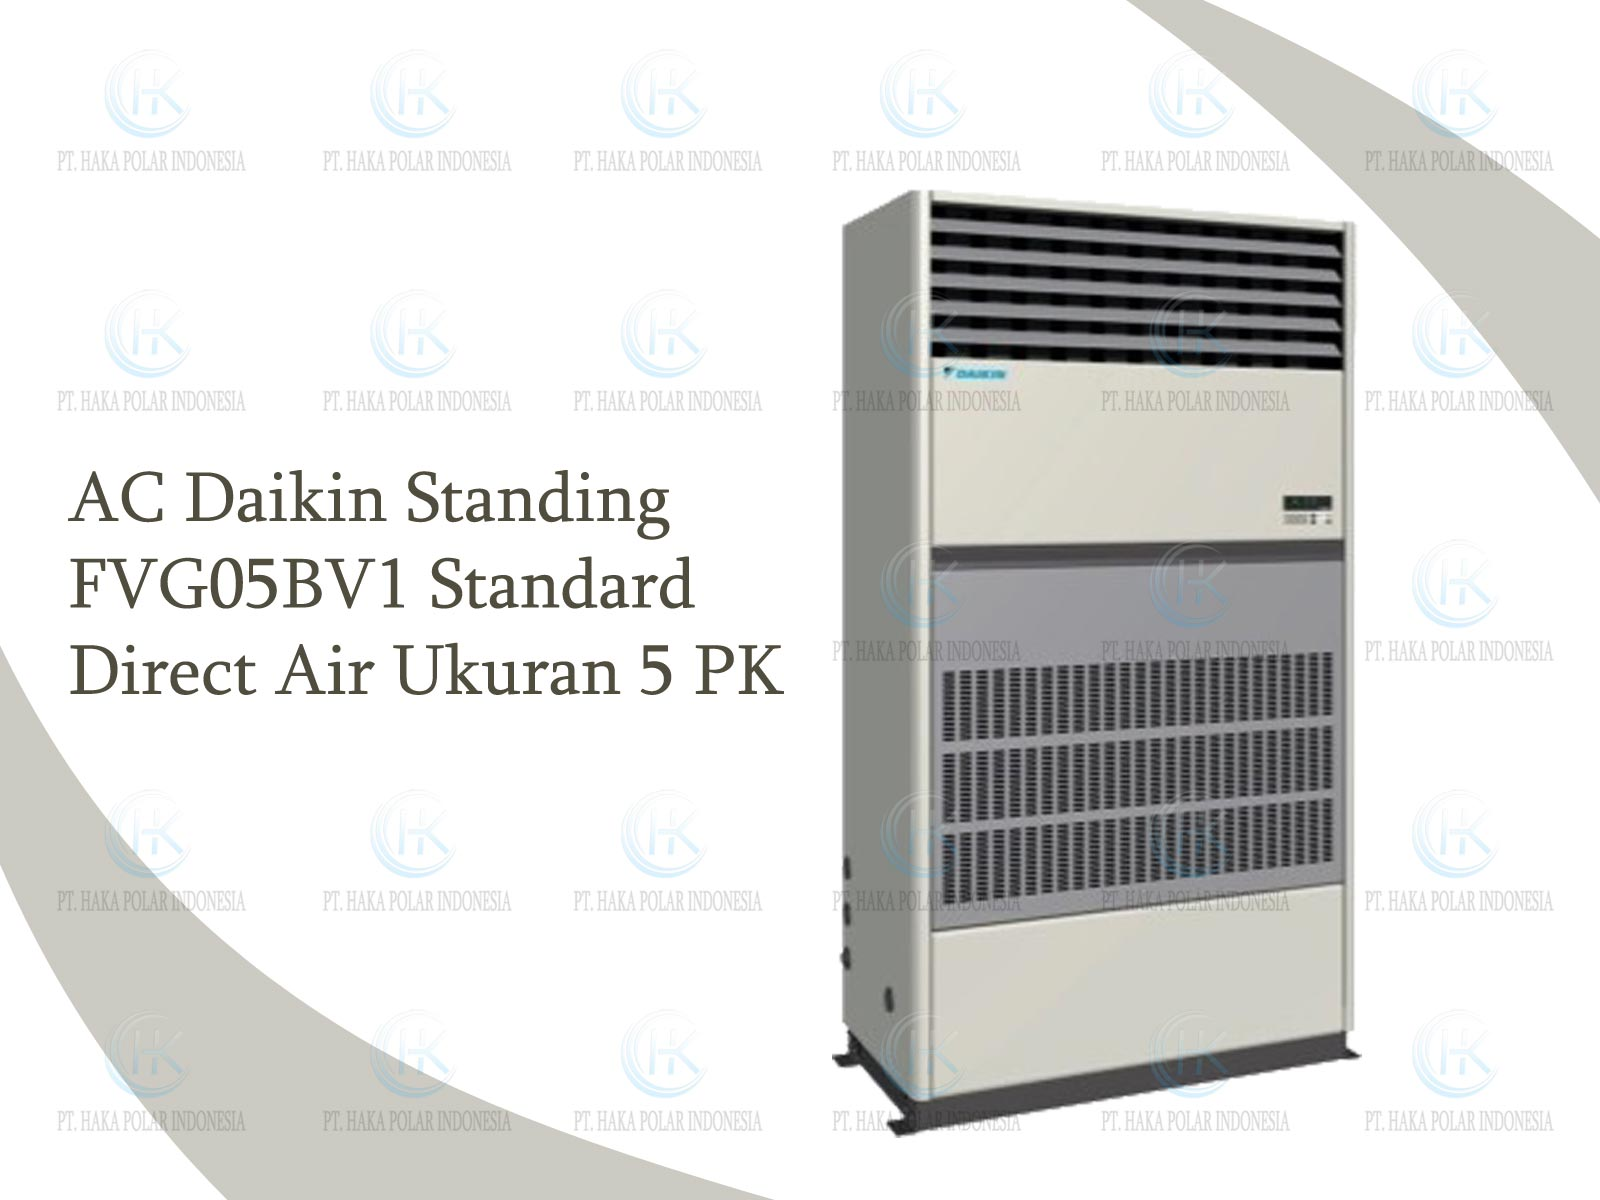 AC Daikin Package FVG05BV1 5 PK Floor Standing Standard Direct Air